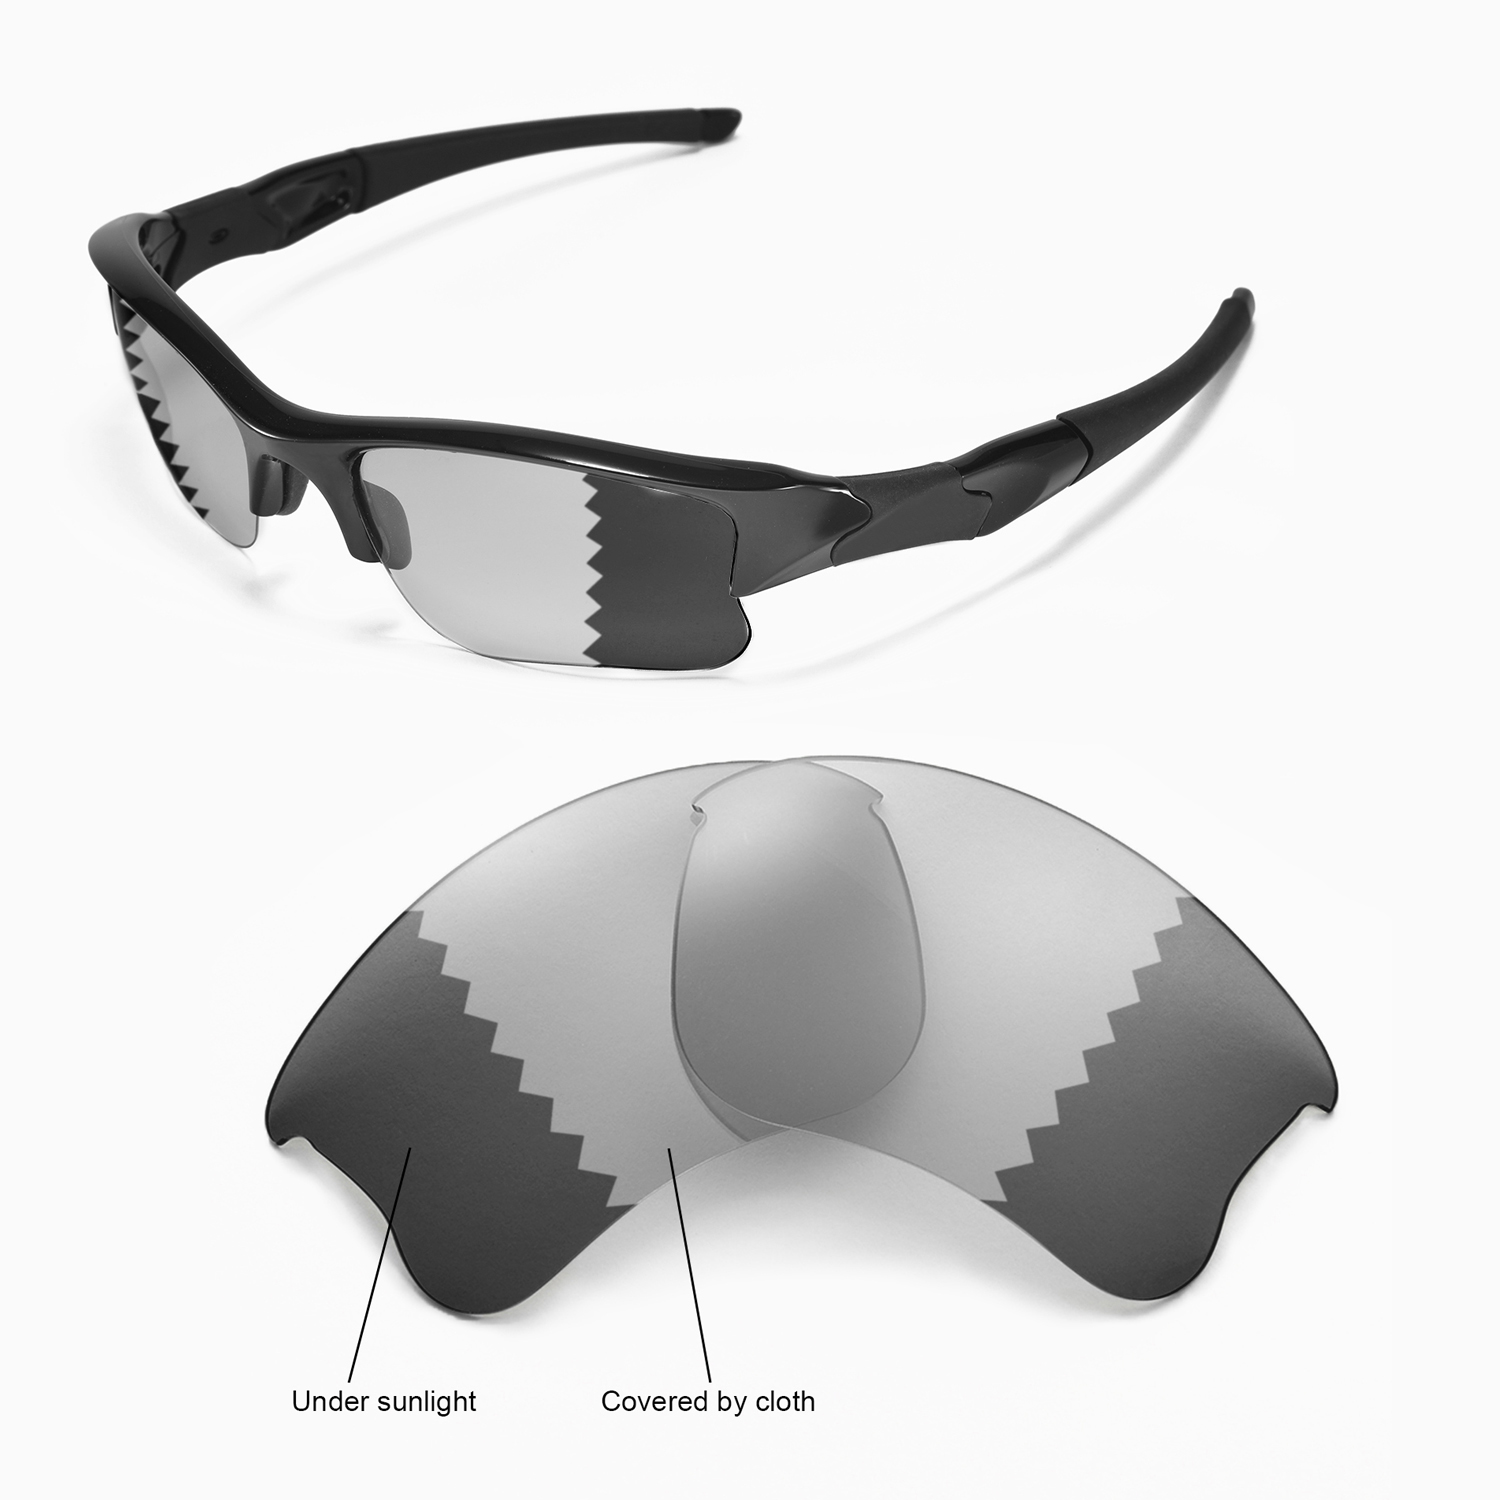 Replacement Lenses For Oakley Sunglasses  new walleva polarized transition photochromic lenses for oakley